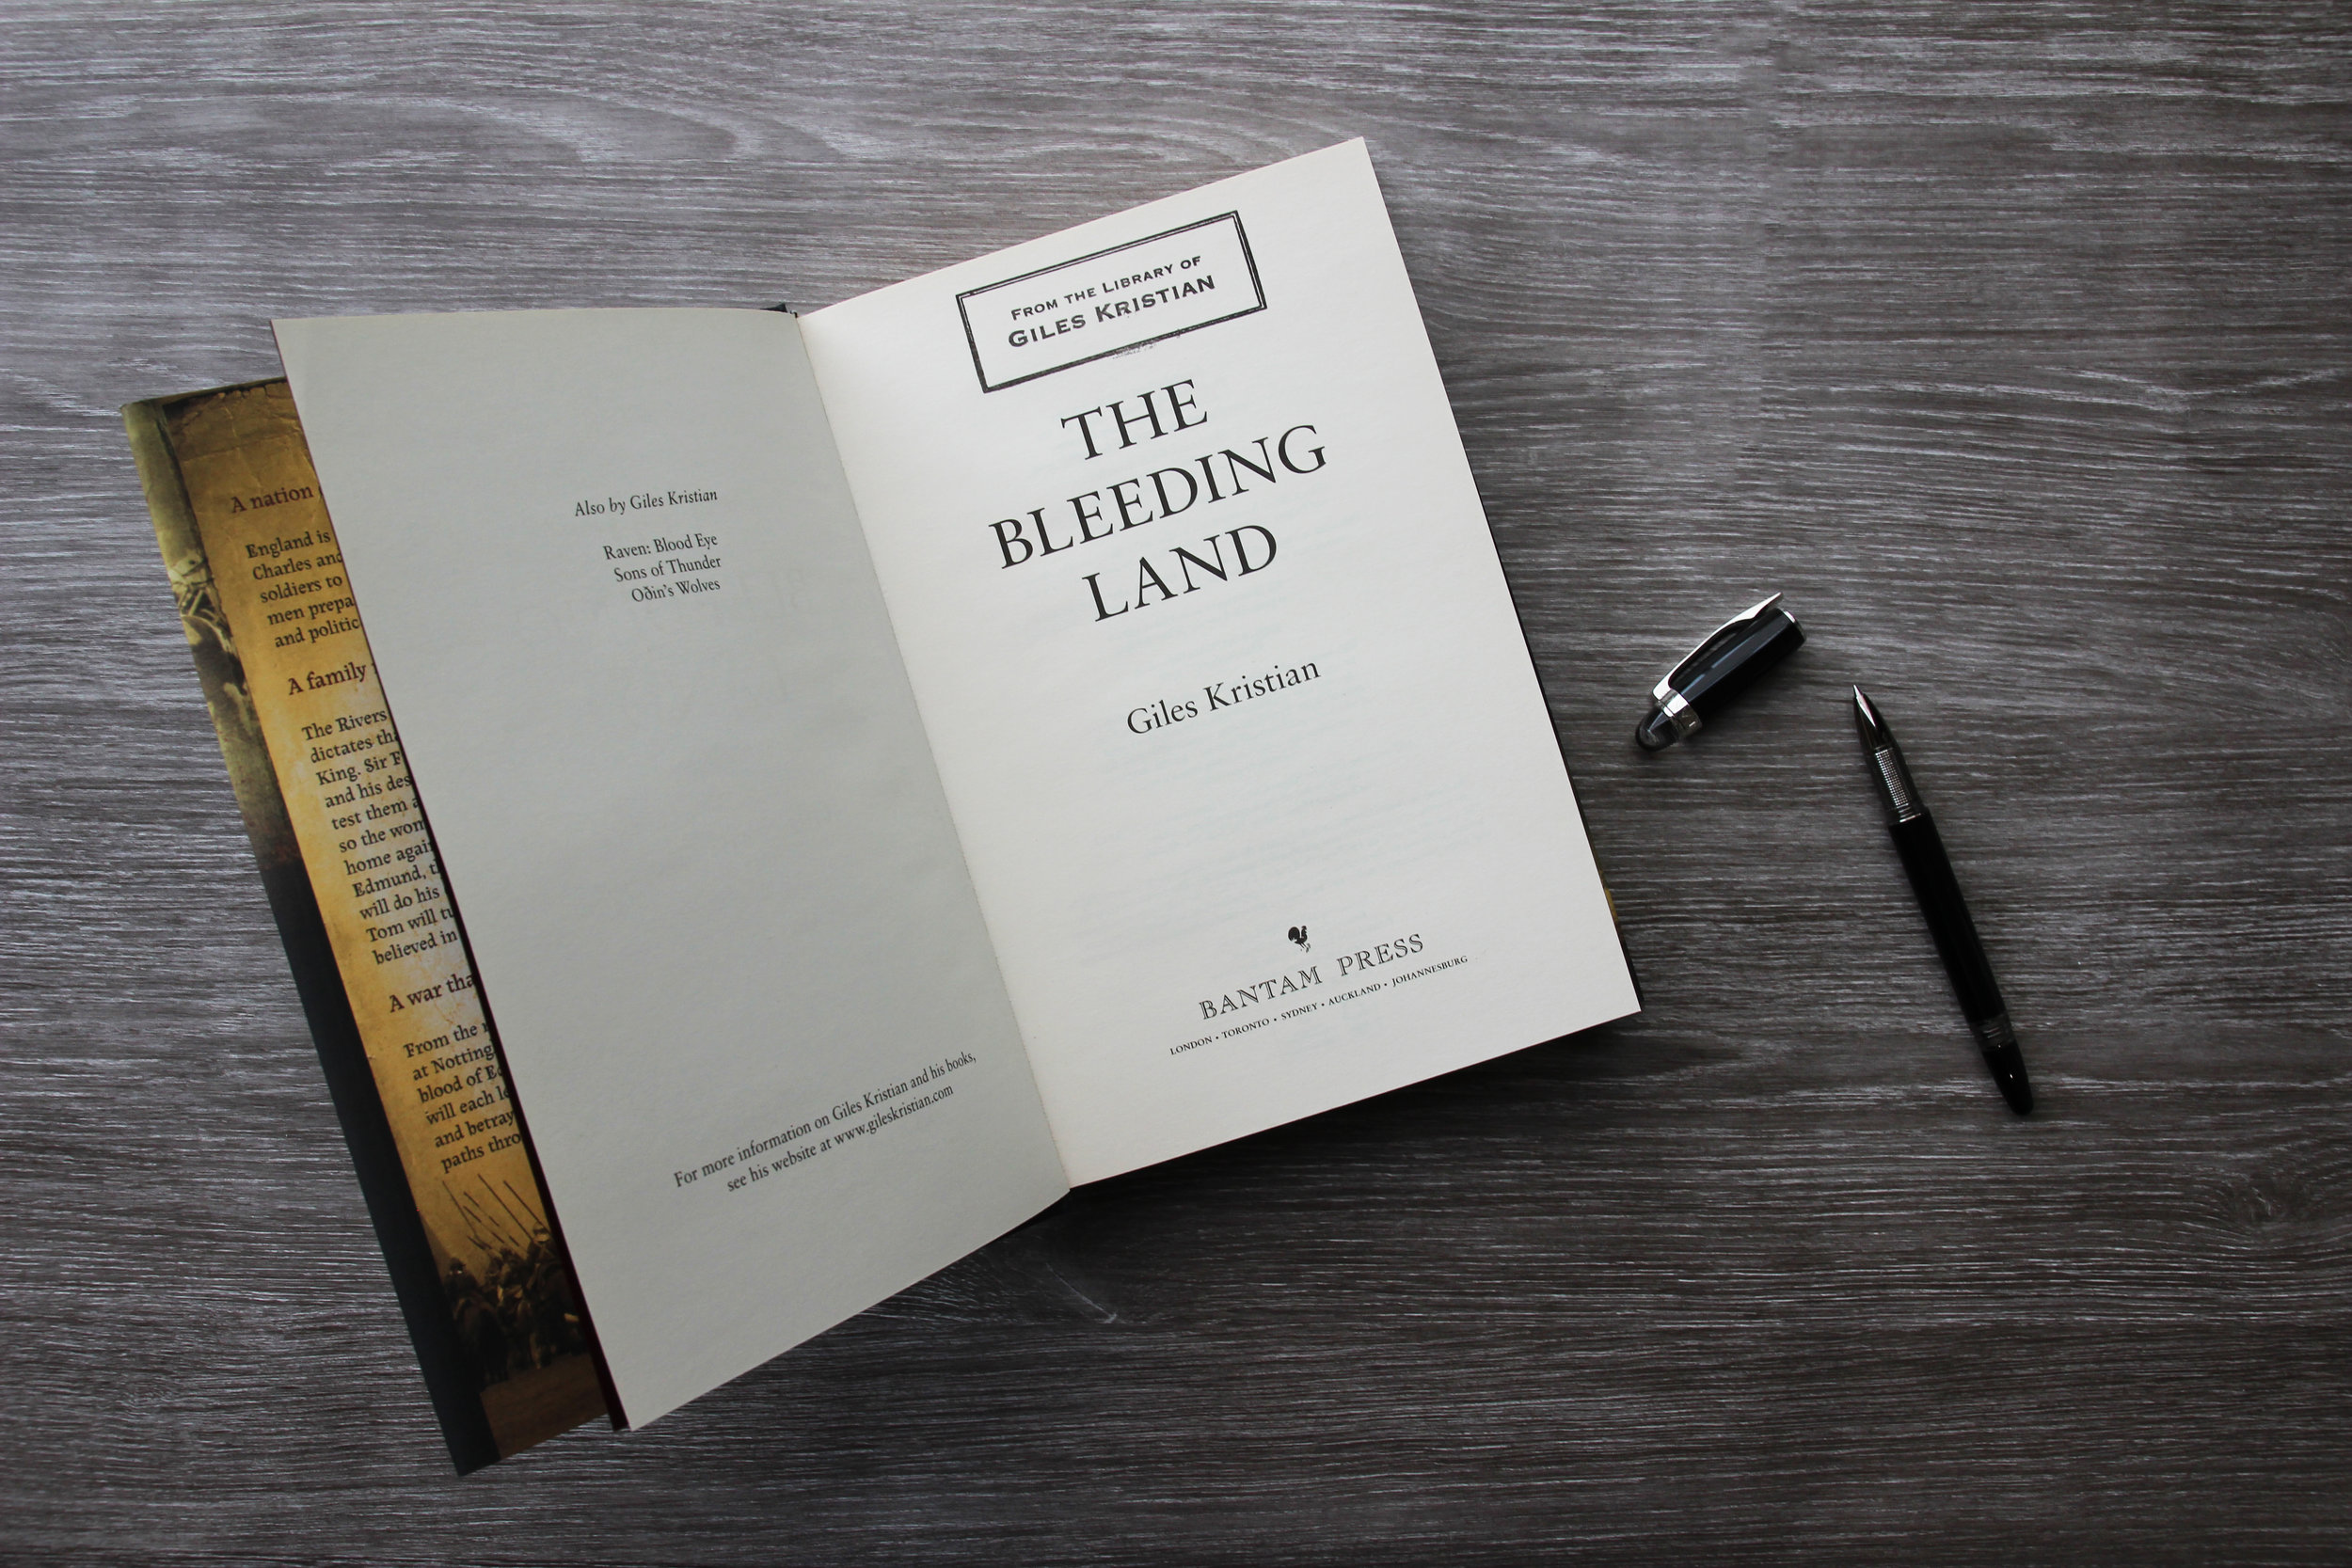 Signed copy of The Bleeding Land by Giles Kristian